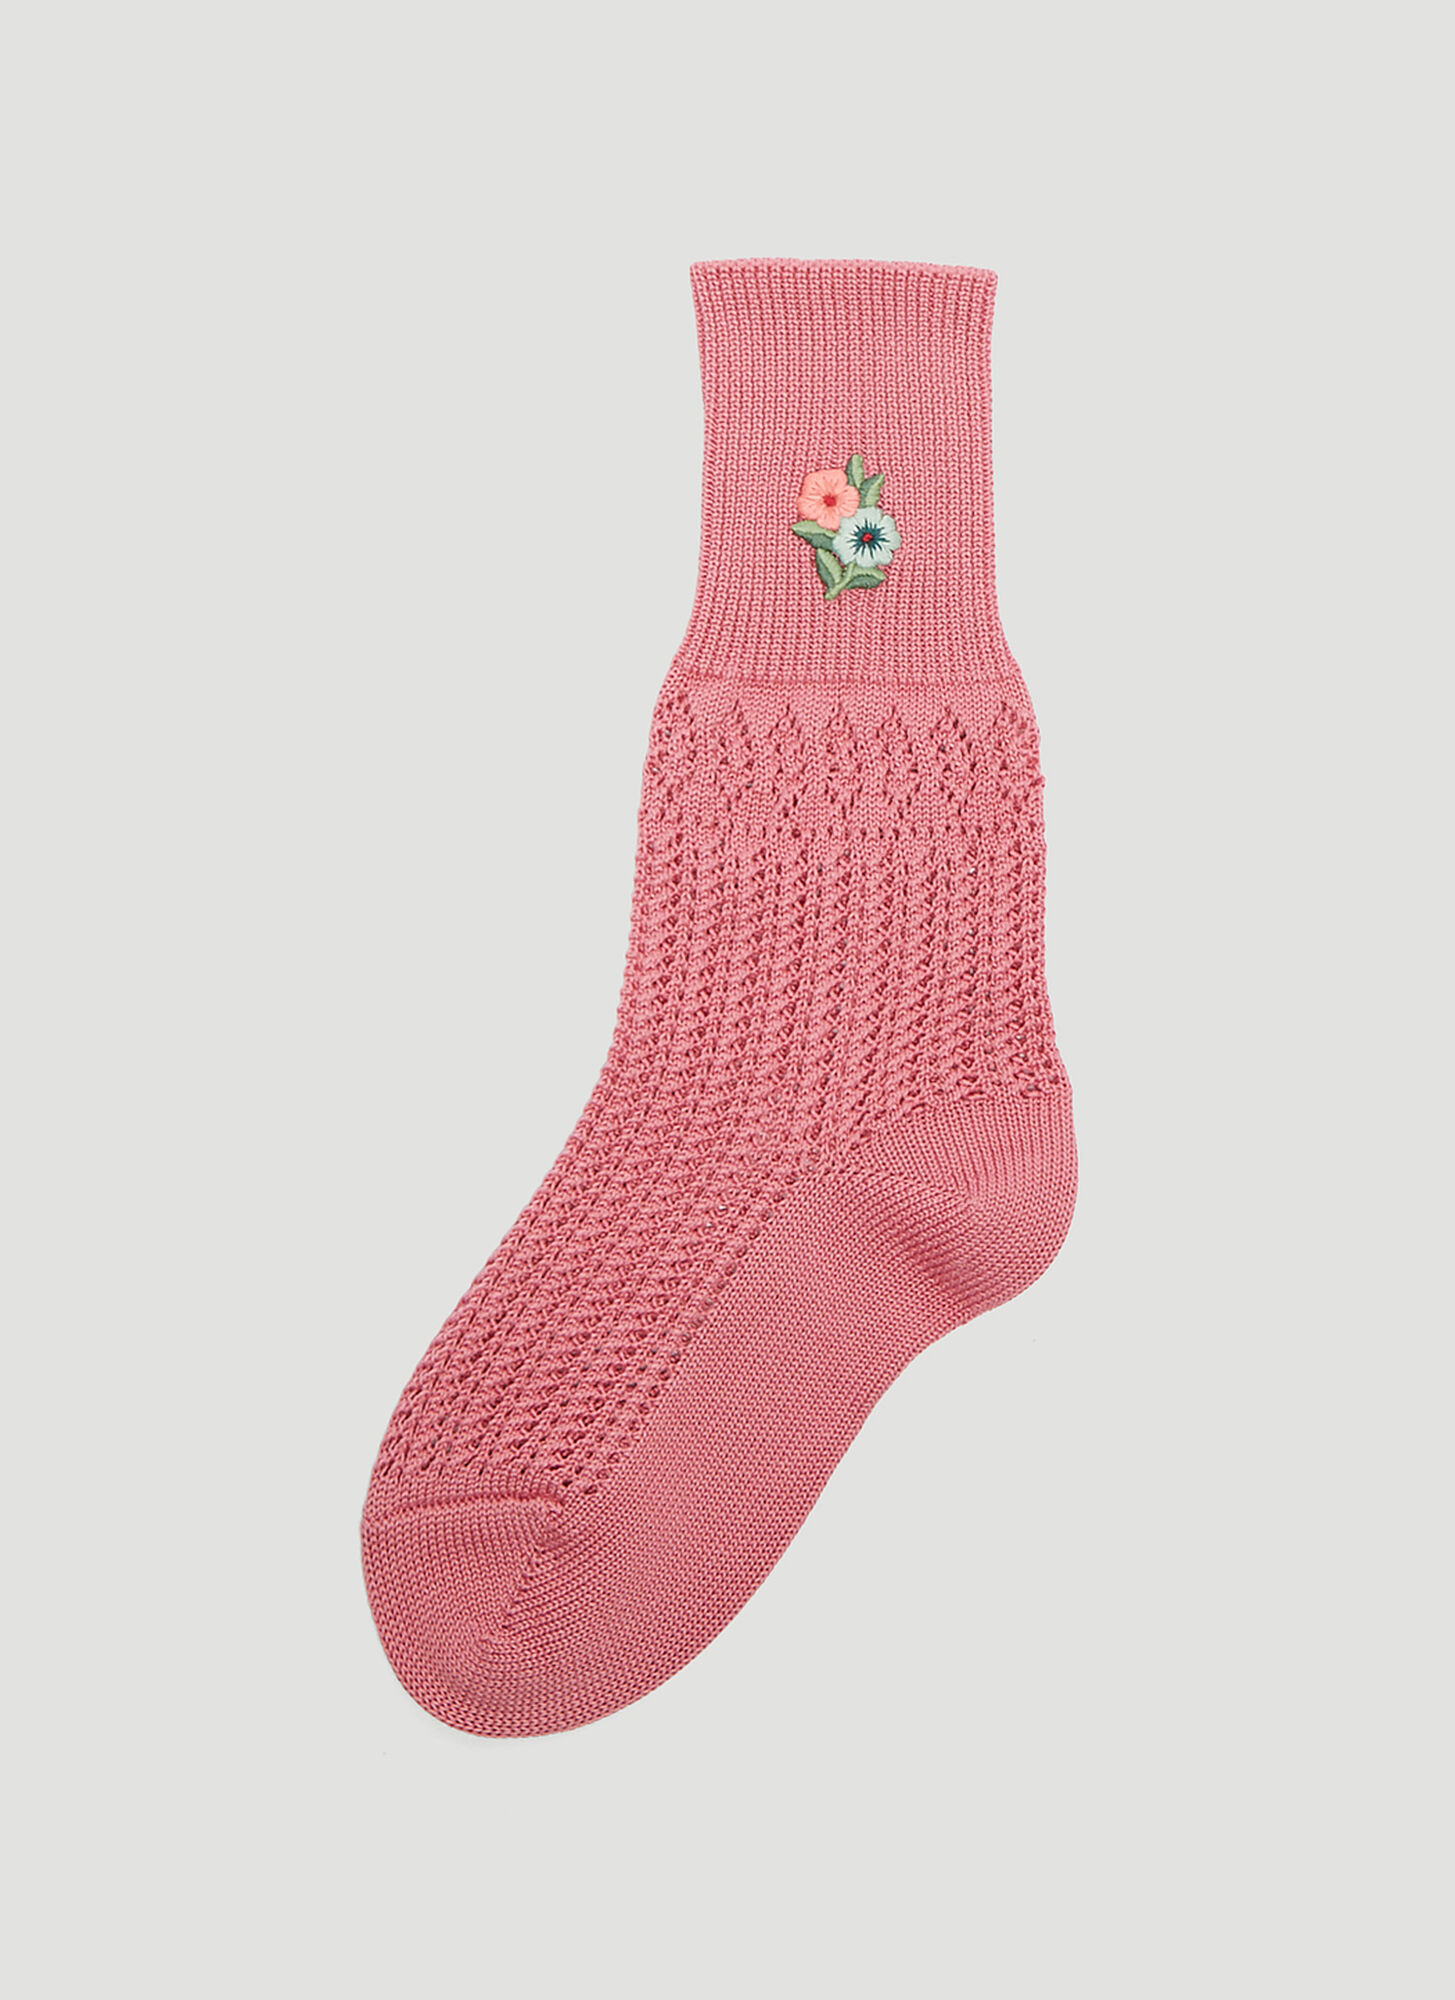 Gucci Floral Embroidered Crochet Socks in Pink